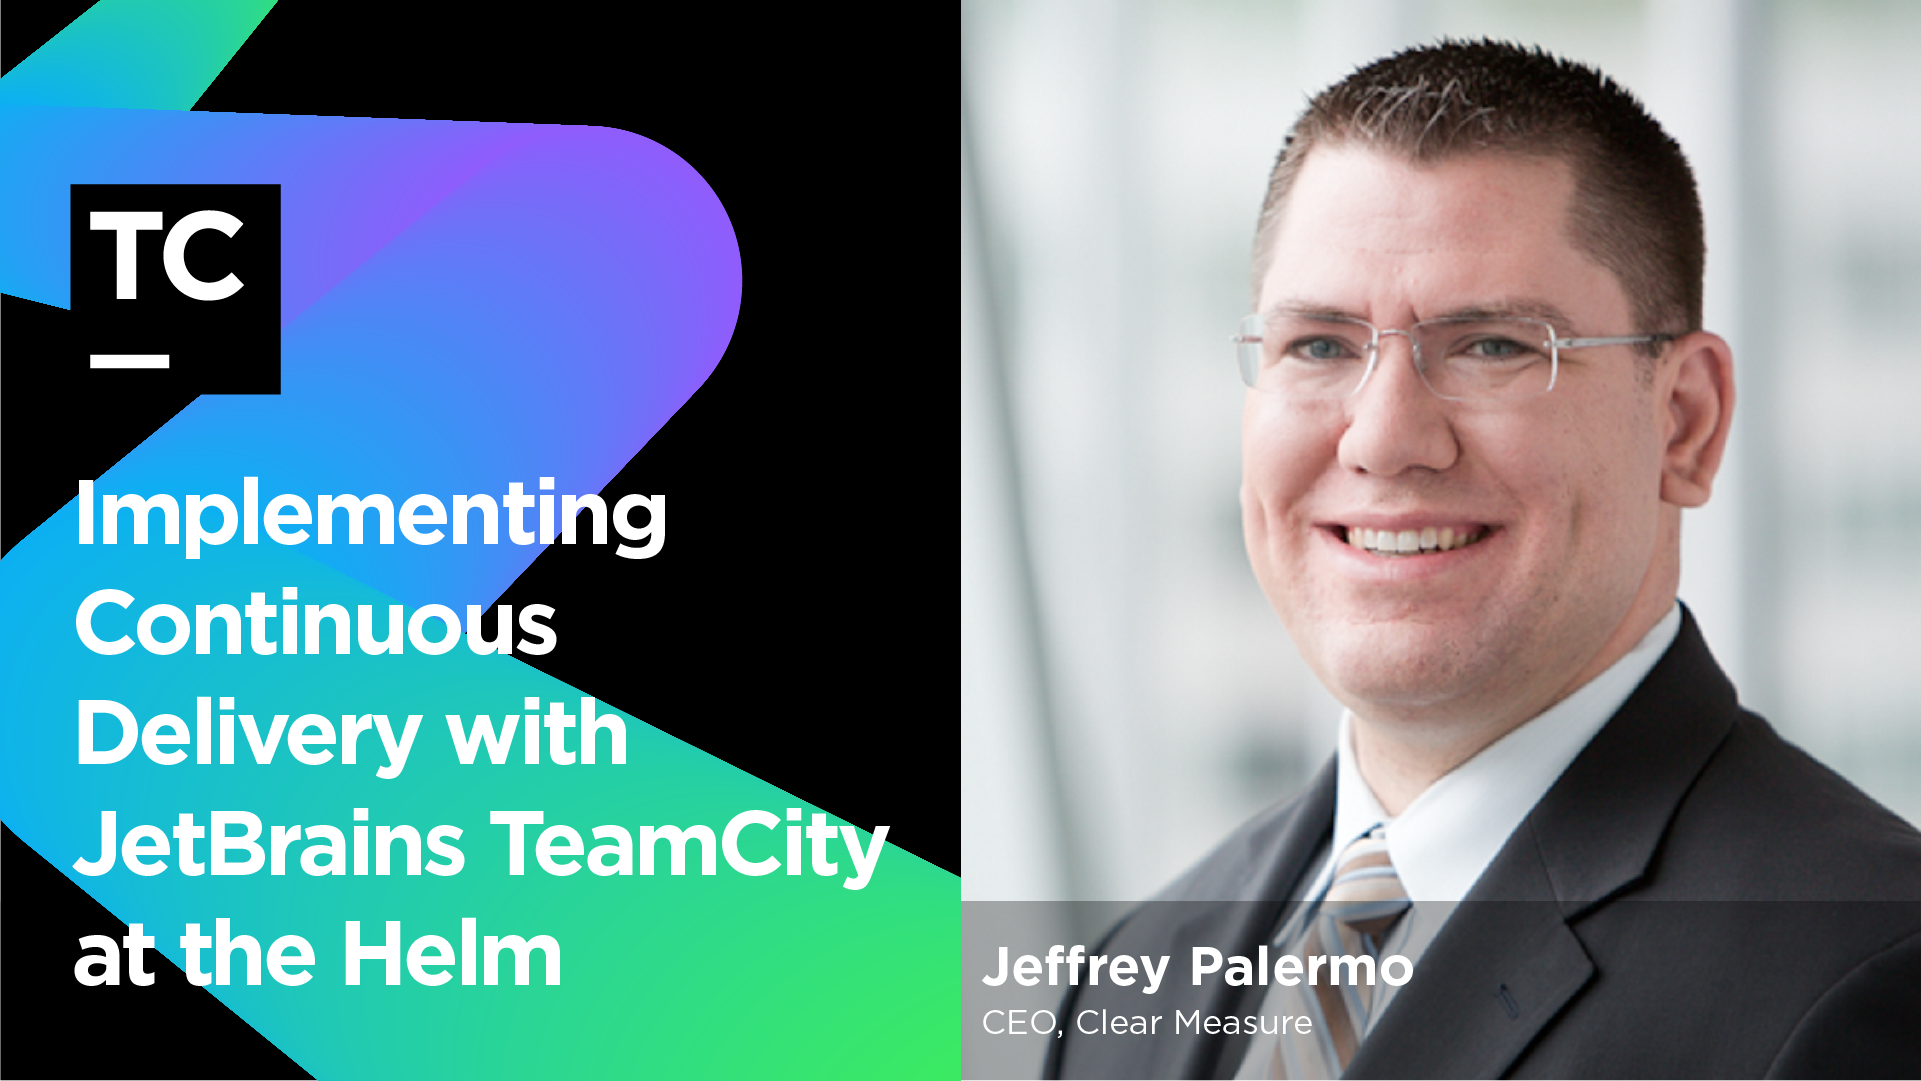 teamcity_webinar_Implementing_Continuous_Delivery_with_JetBrains_TeamCity_at_the_Helm